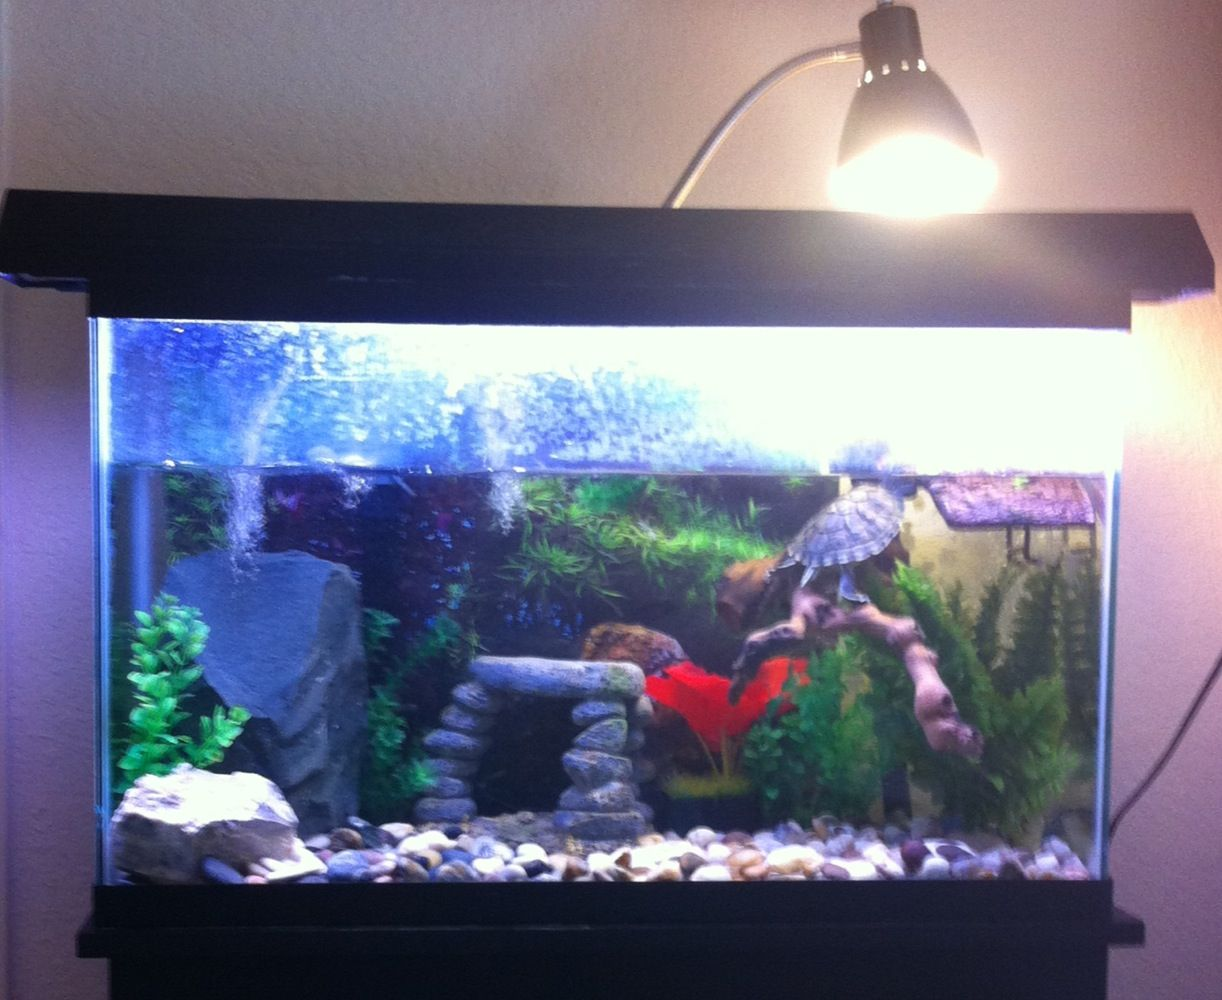 My setup for my 29 gallon tank for my 5 inch female Red